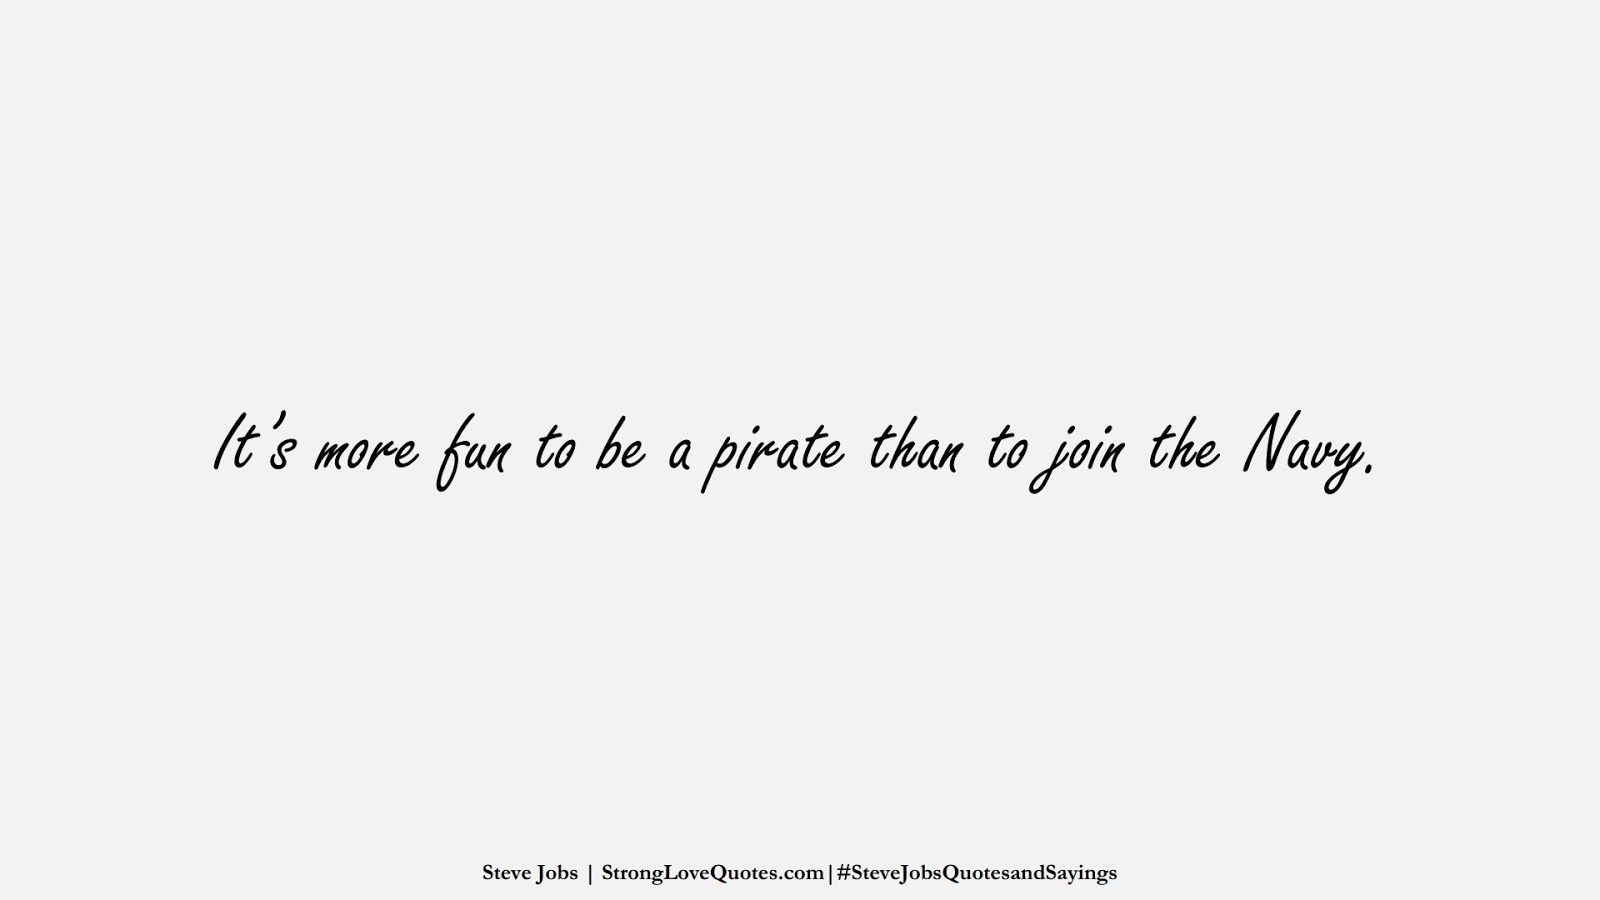 It's more fun to be a pirate than to join the Navy. (Steve Jobs);  #SteveJobsQuotesandSayings